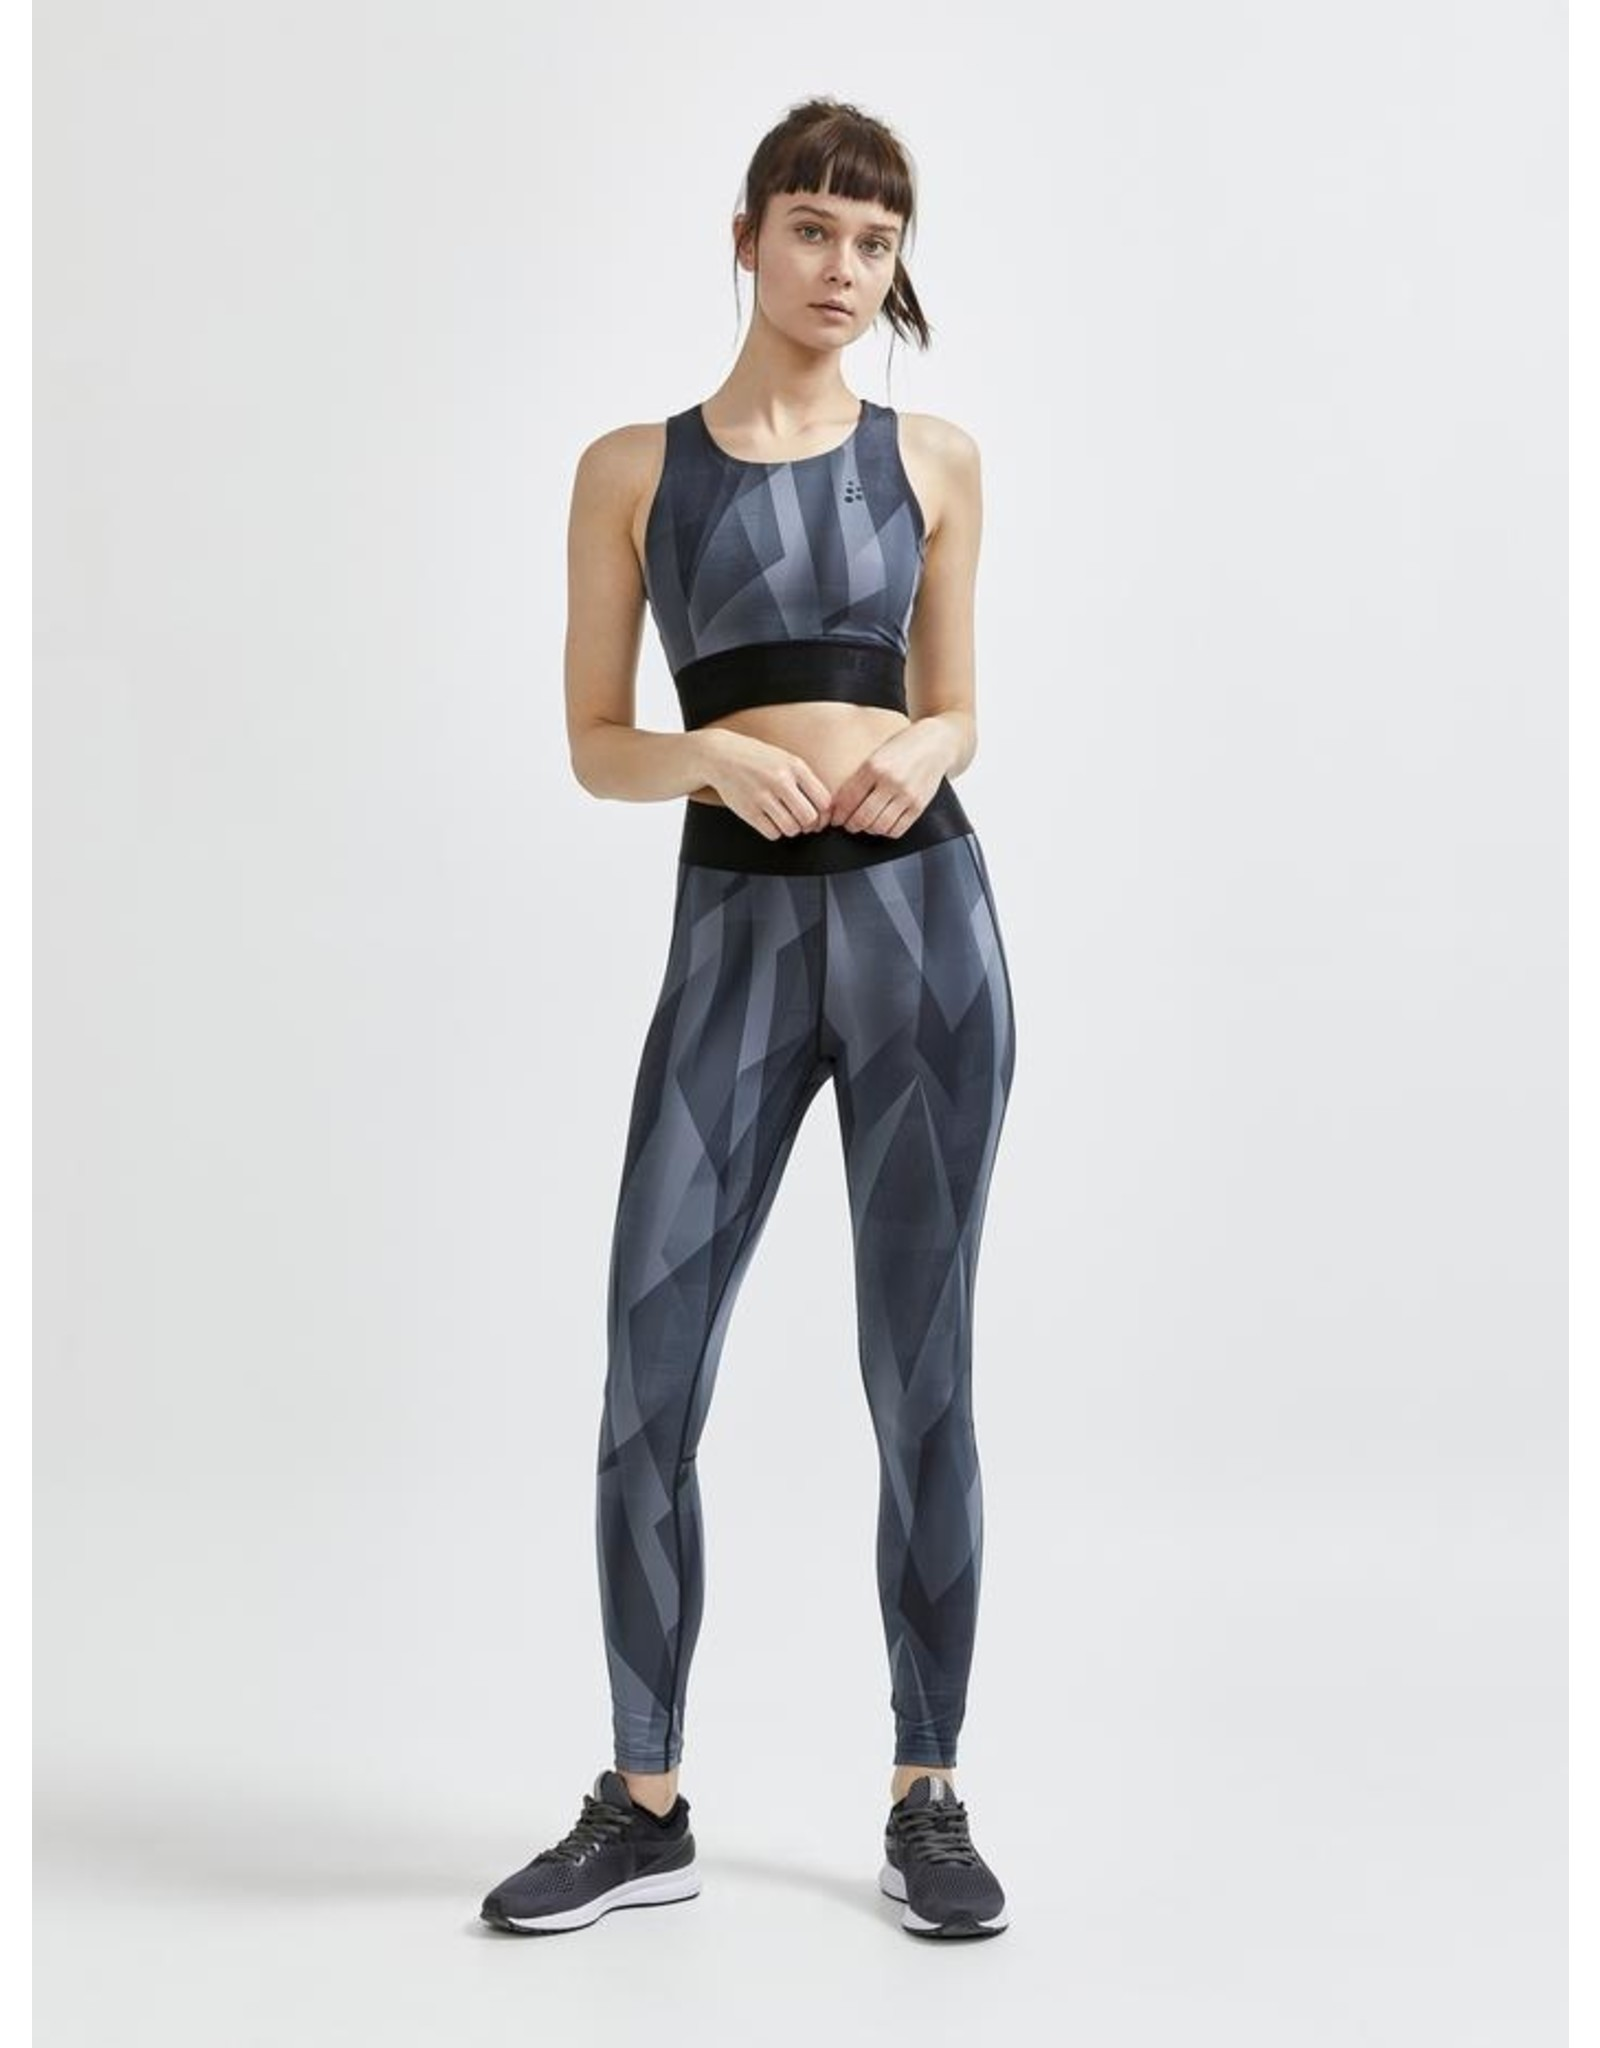 CRAFT 1910502 SOUTIEN-GORGE CORE CHARGE SPORT TO